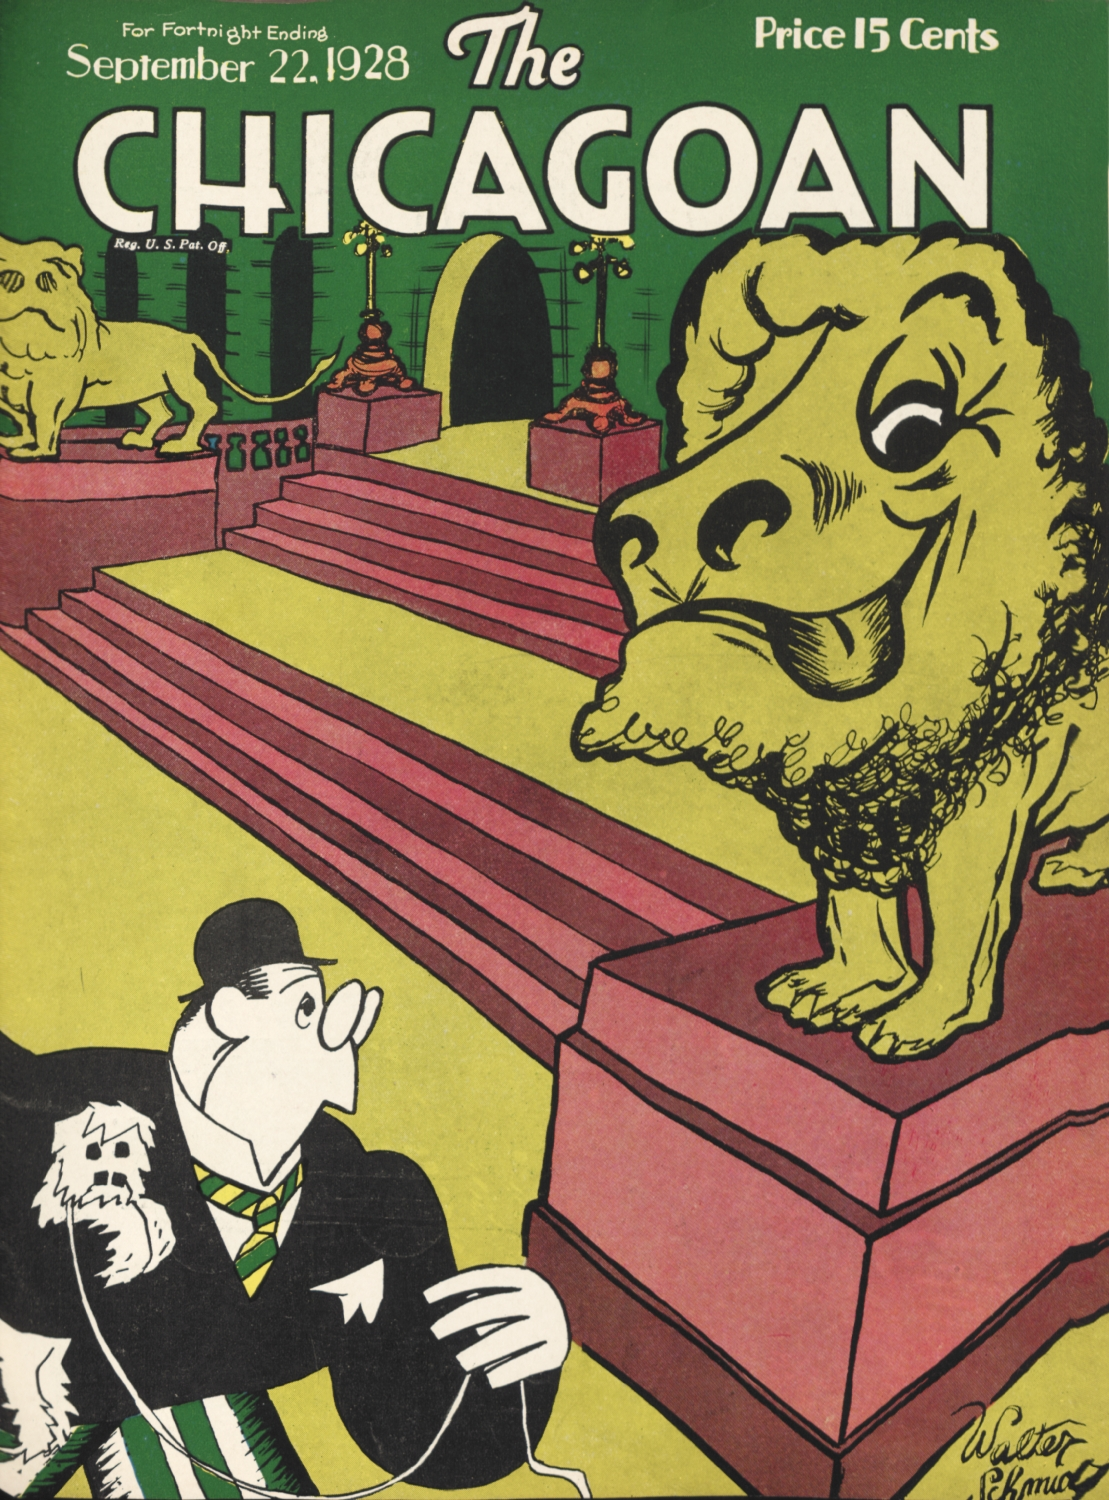 New Yorker Cover 1930s